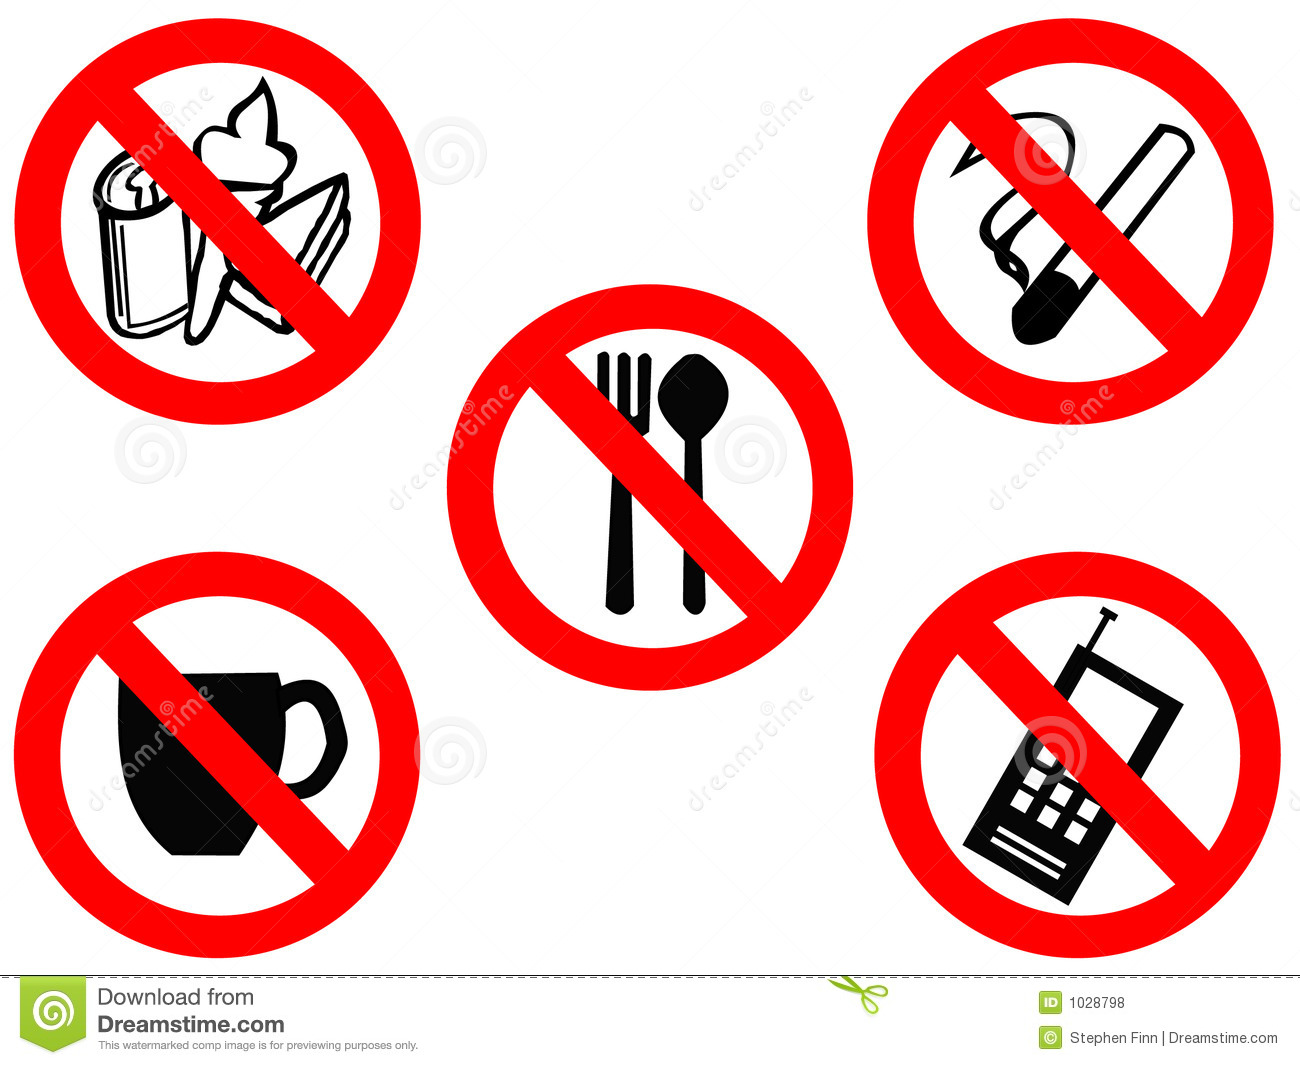 Что такое eating prohibitted 7 фотография